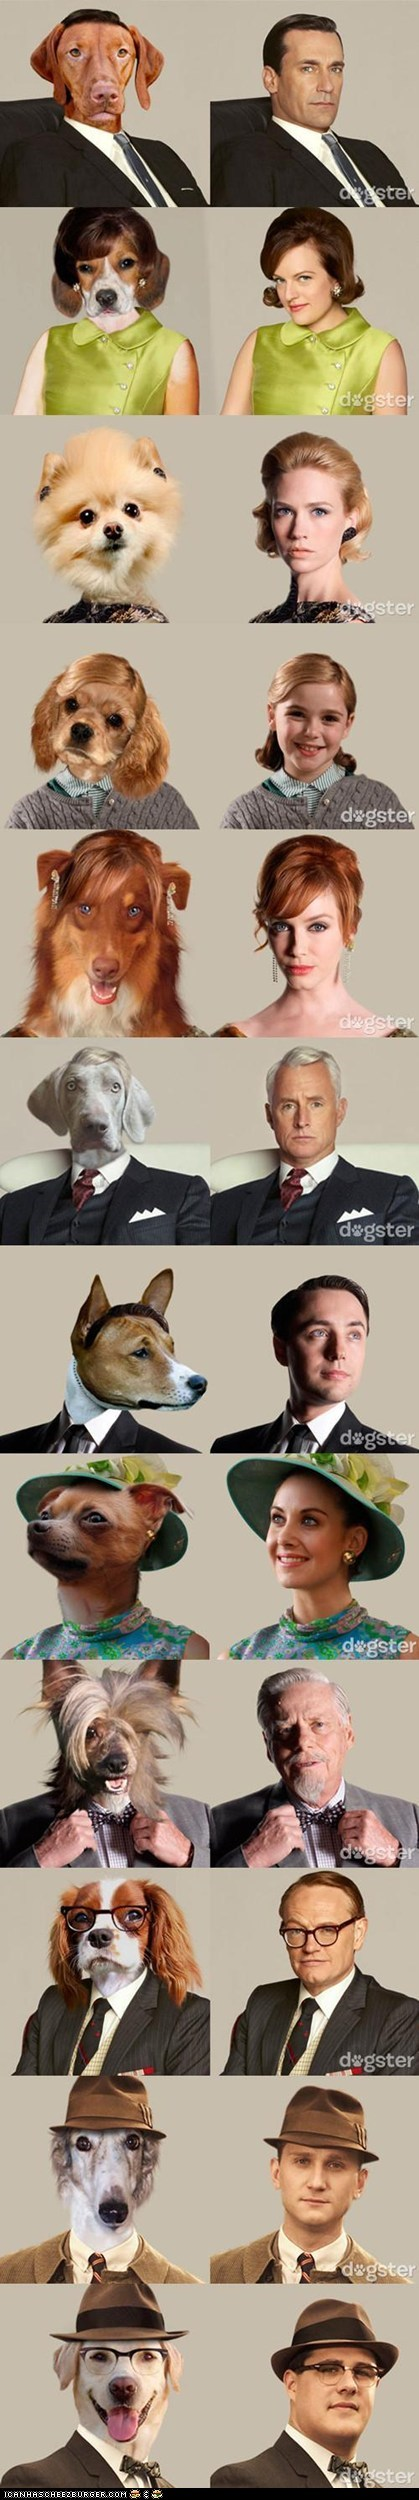 characters dogs mad men multipanel photoshopped TV - 6065637120